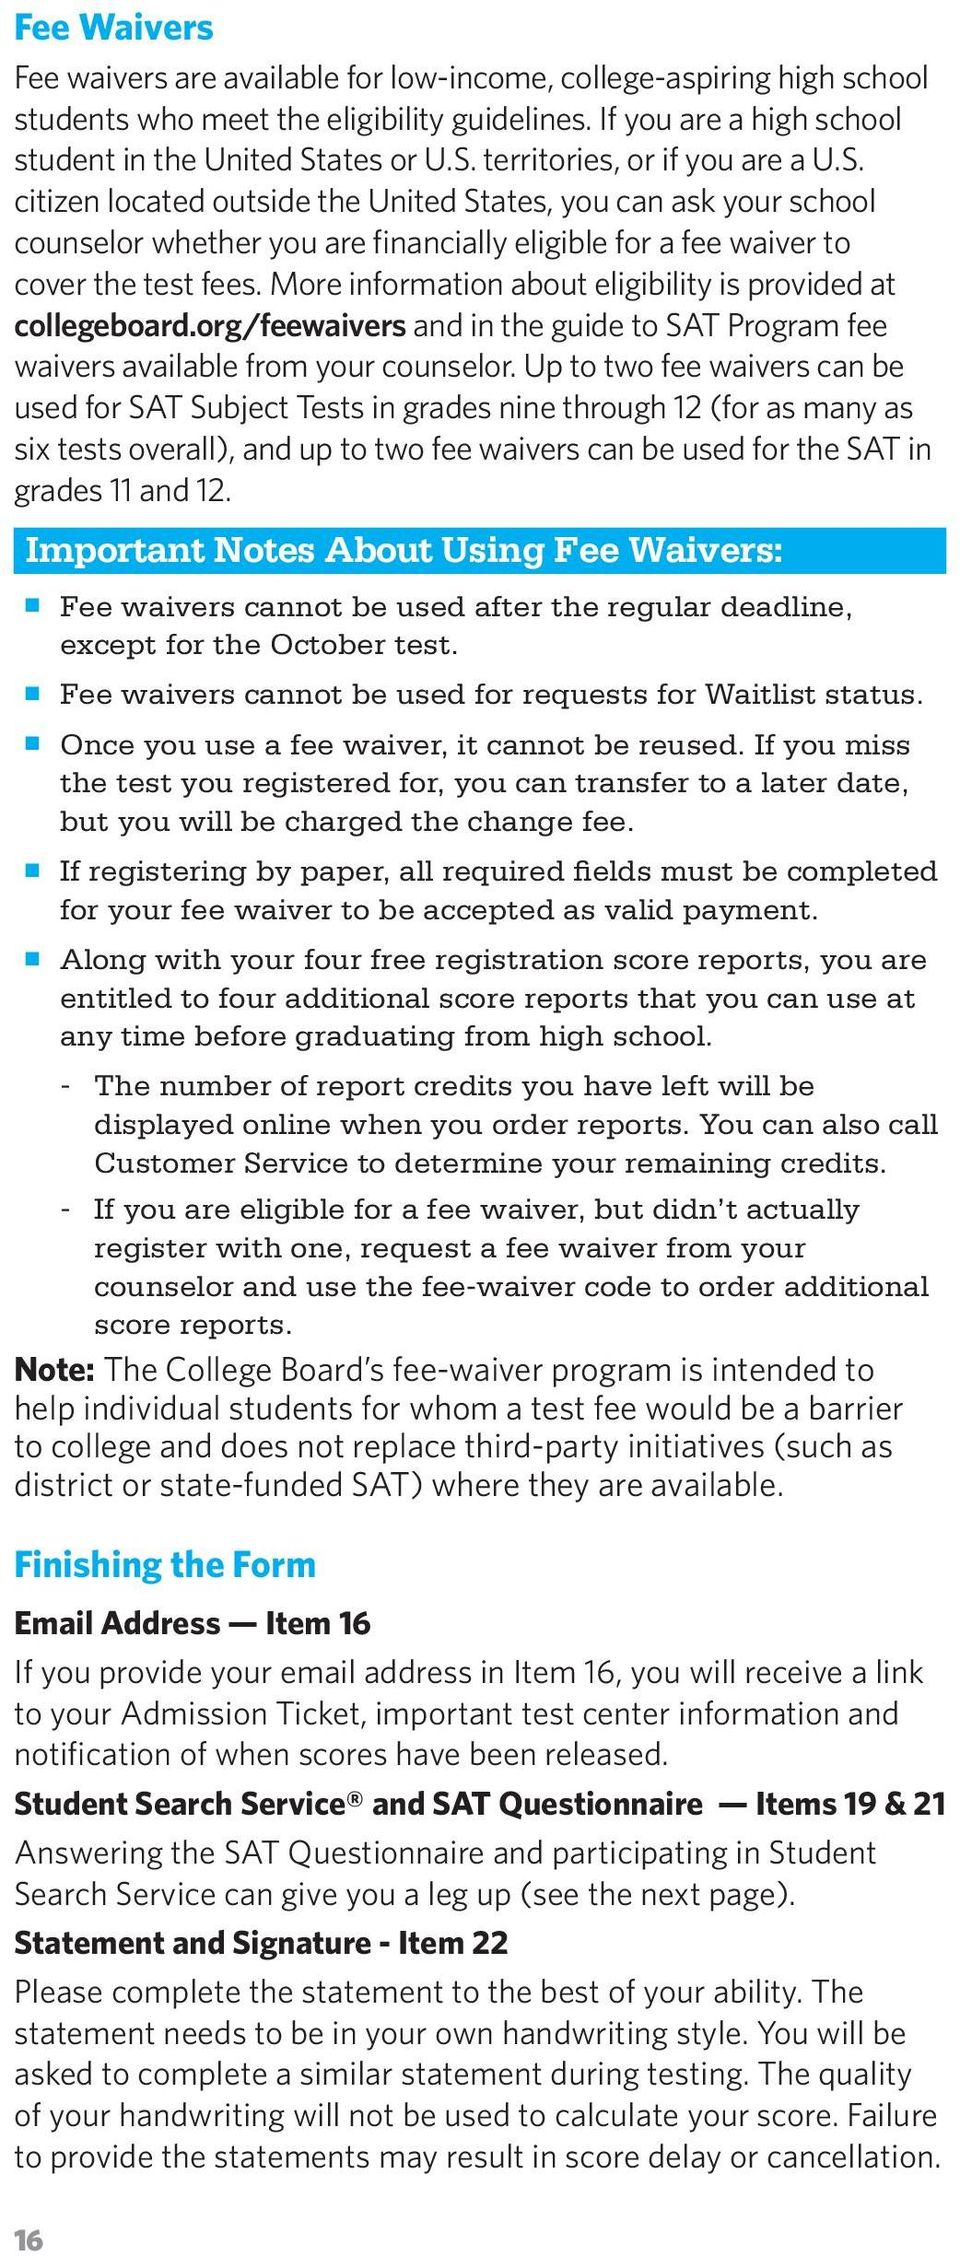 More information about eligibility is provided at collegeboard.org/feewaivers and in the guide to SAT Program fee waivers available from your counselor.